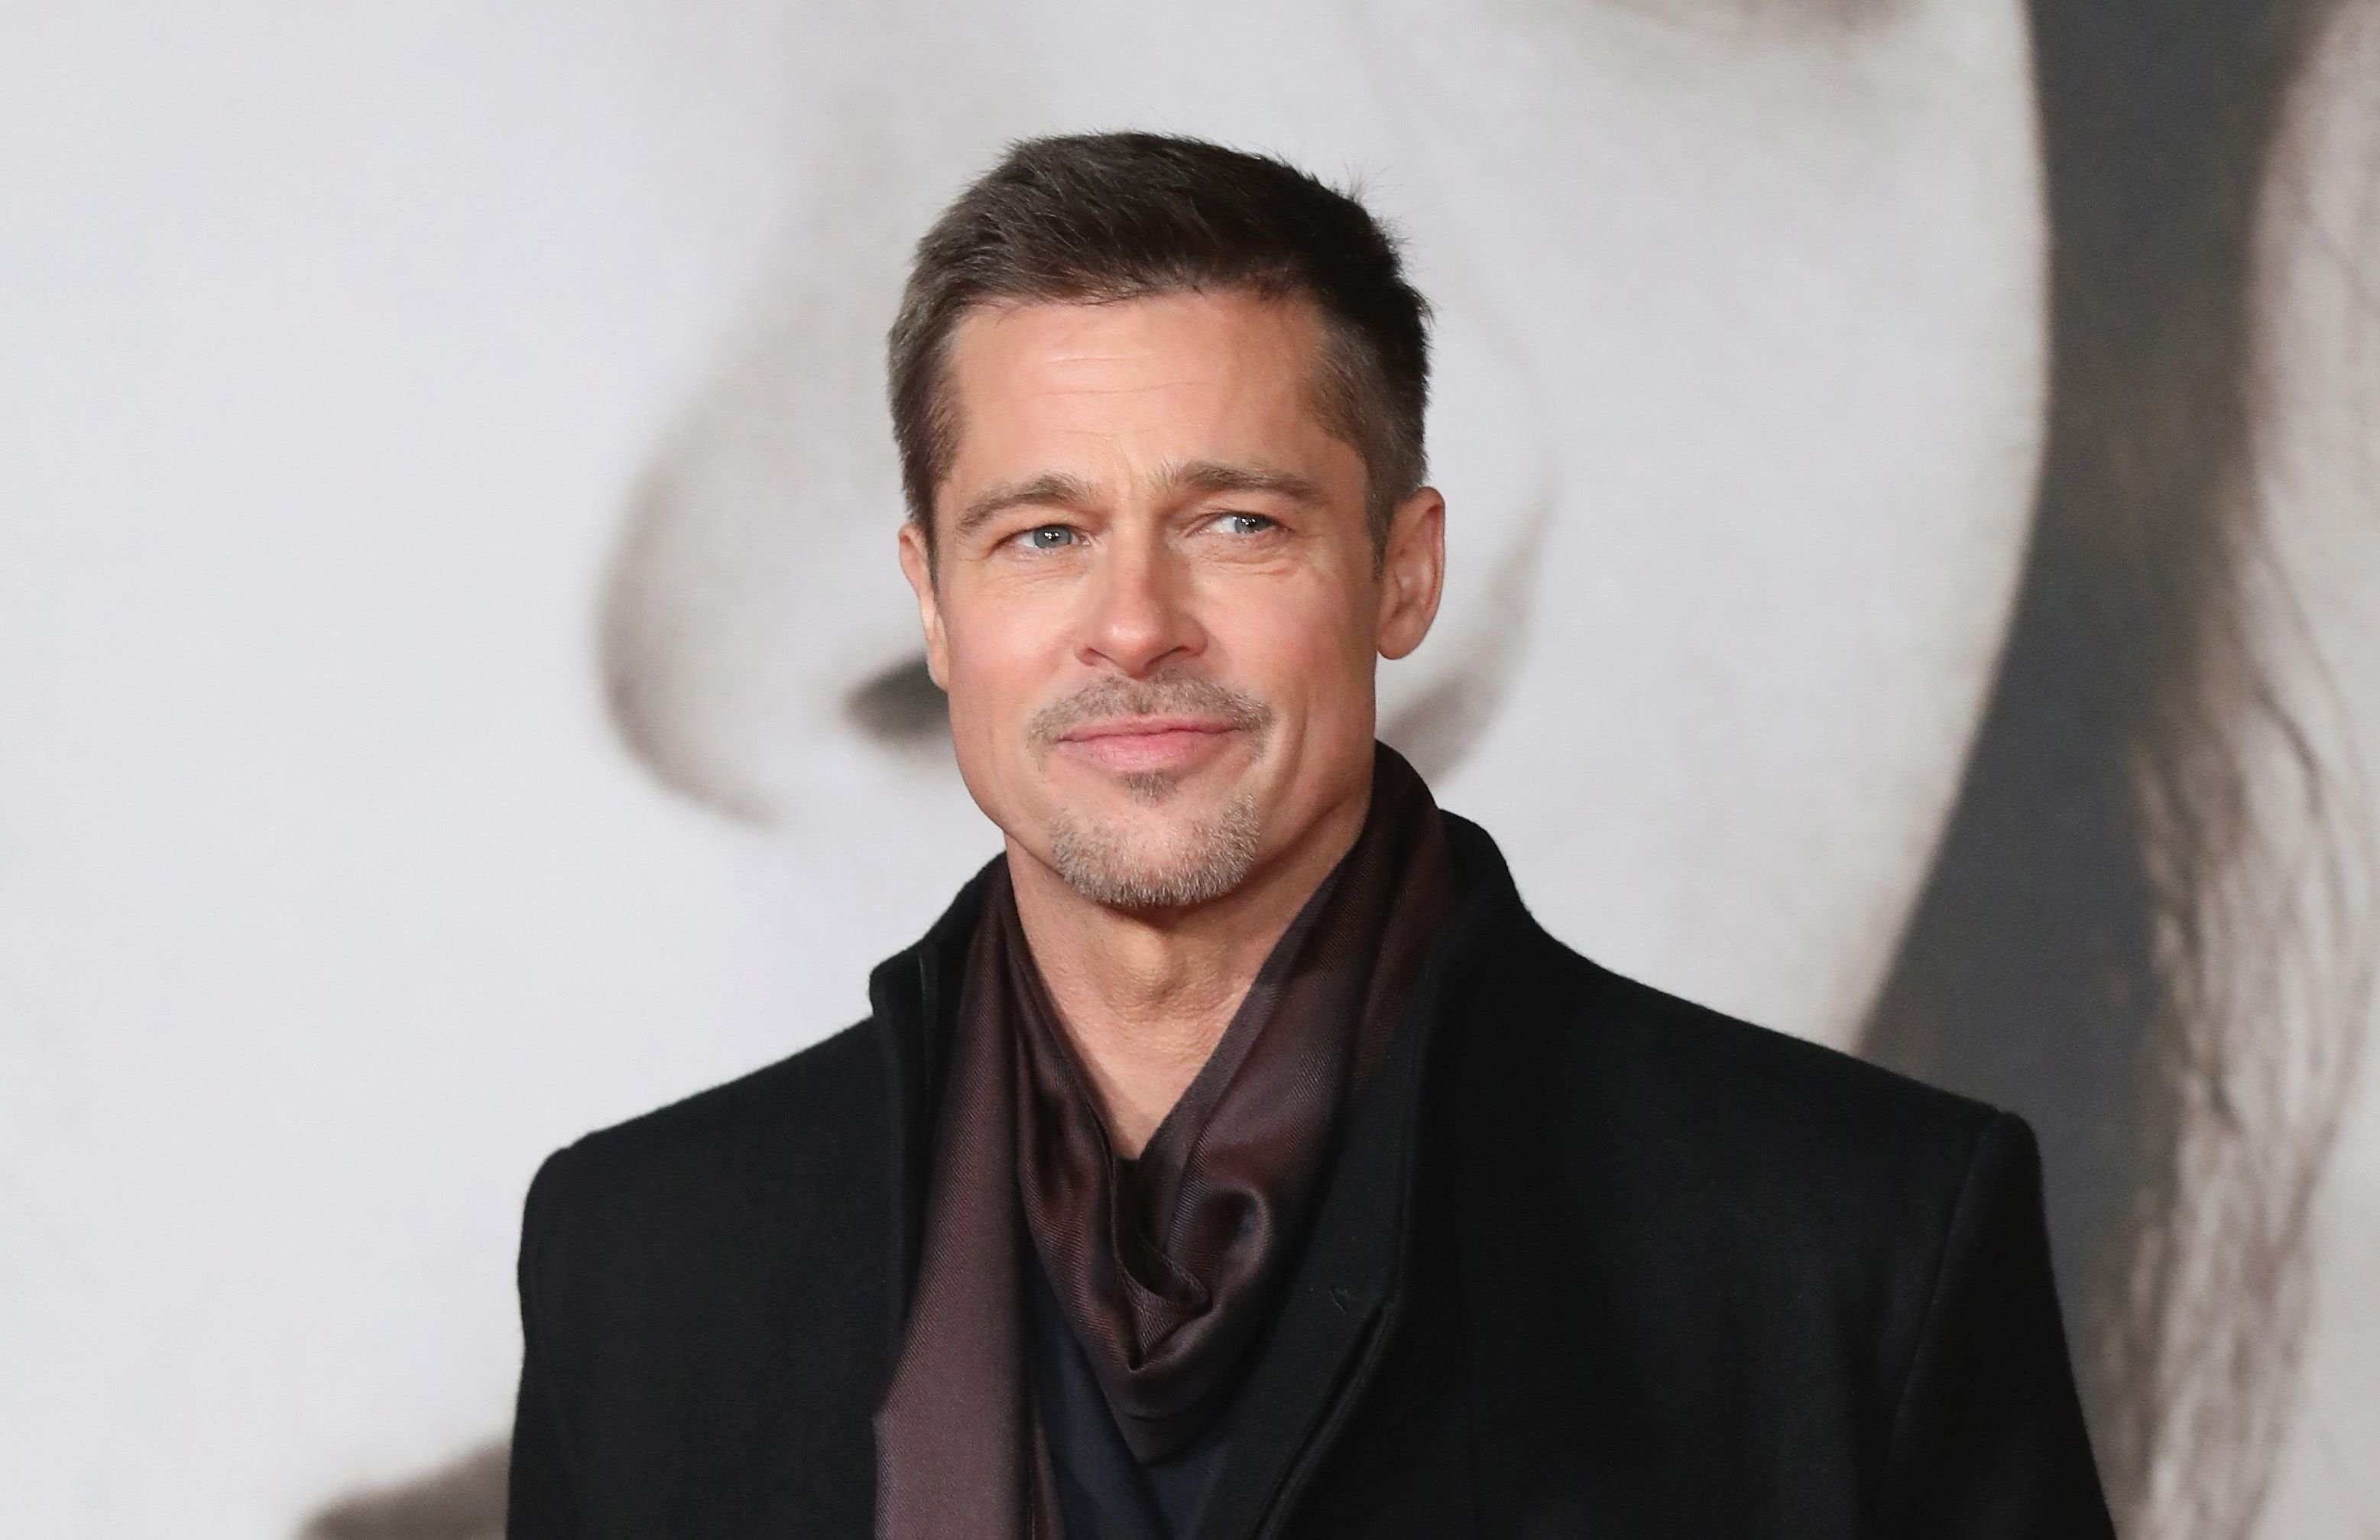 """Brad Pitt at the UK Premiere of """"Allied"""" in November 2016 in London, England 